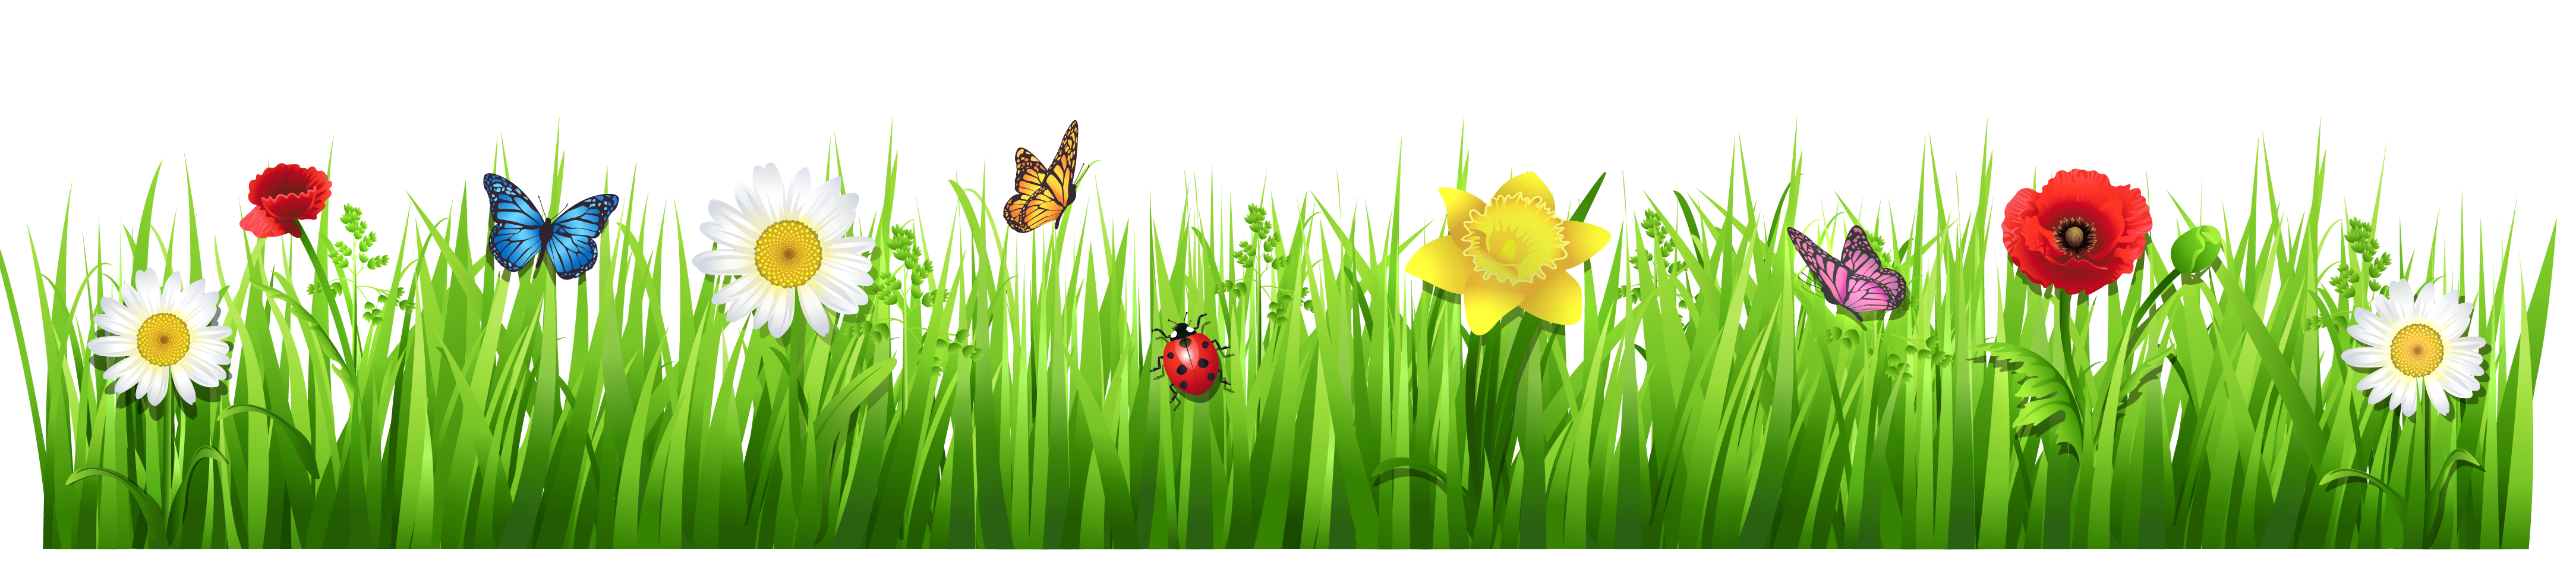 Flower and grass clipart banner free Grass and Flowers Clip Art – Clipart Free Download banner free